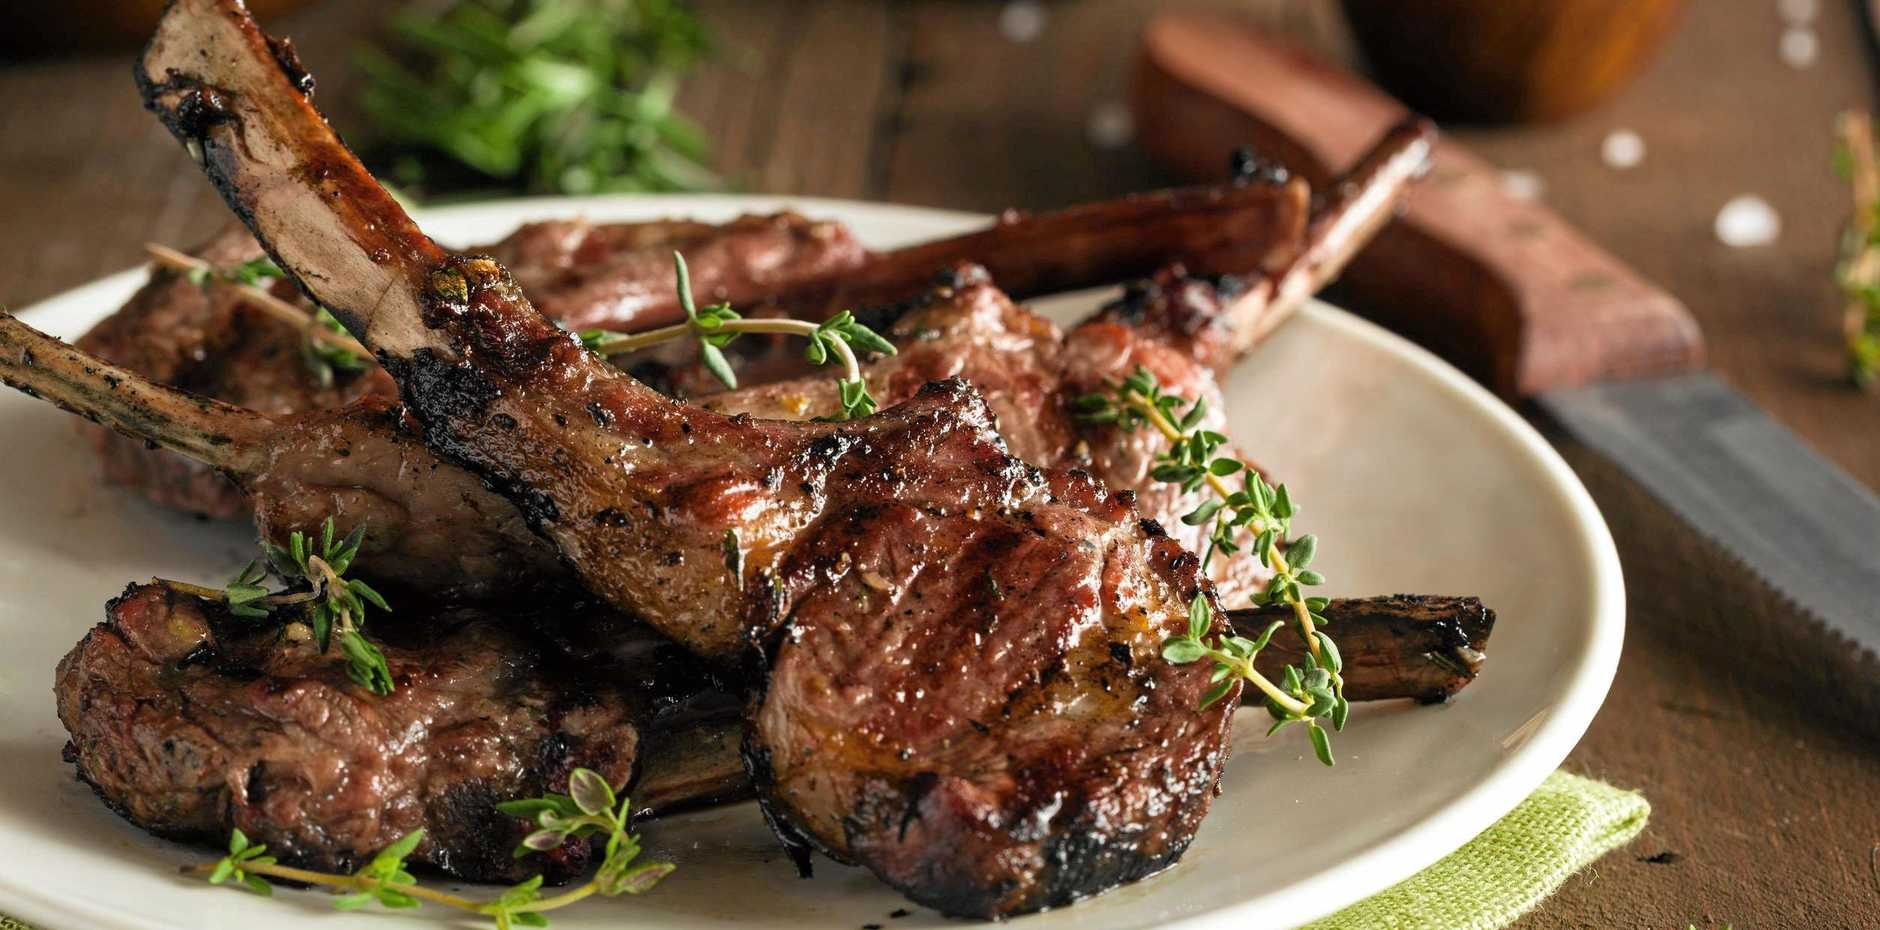 Maggie Cooper's marinated lamb cutlets.